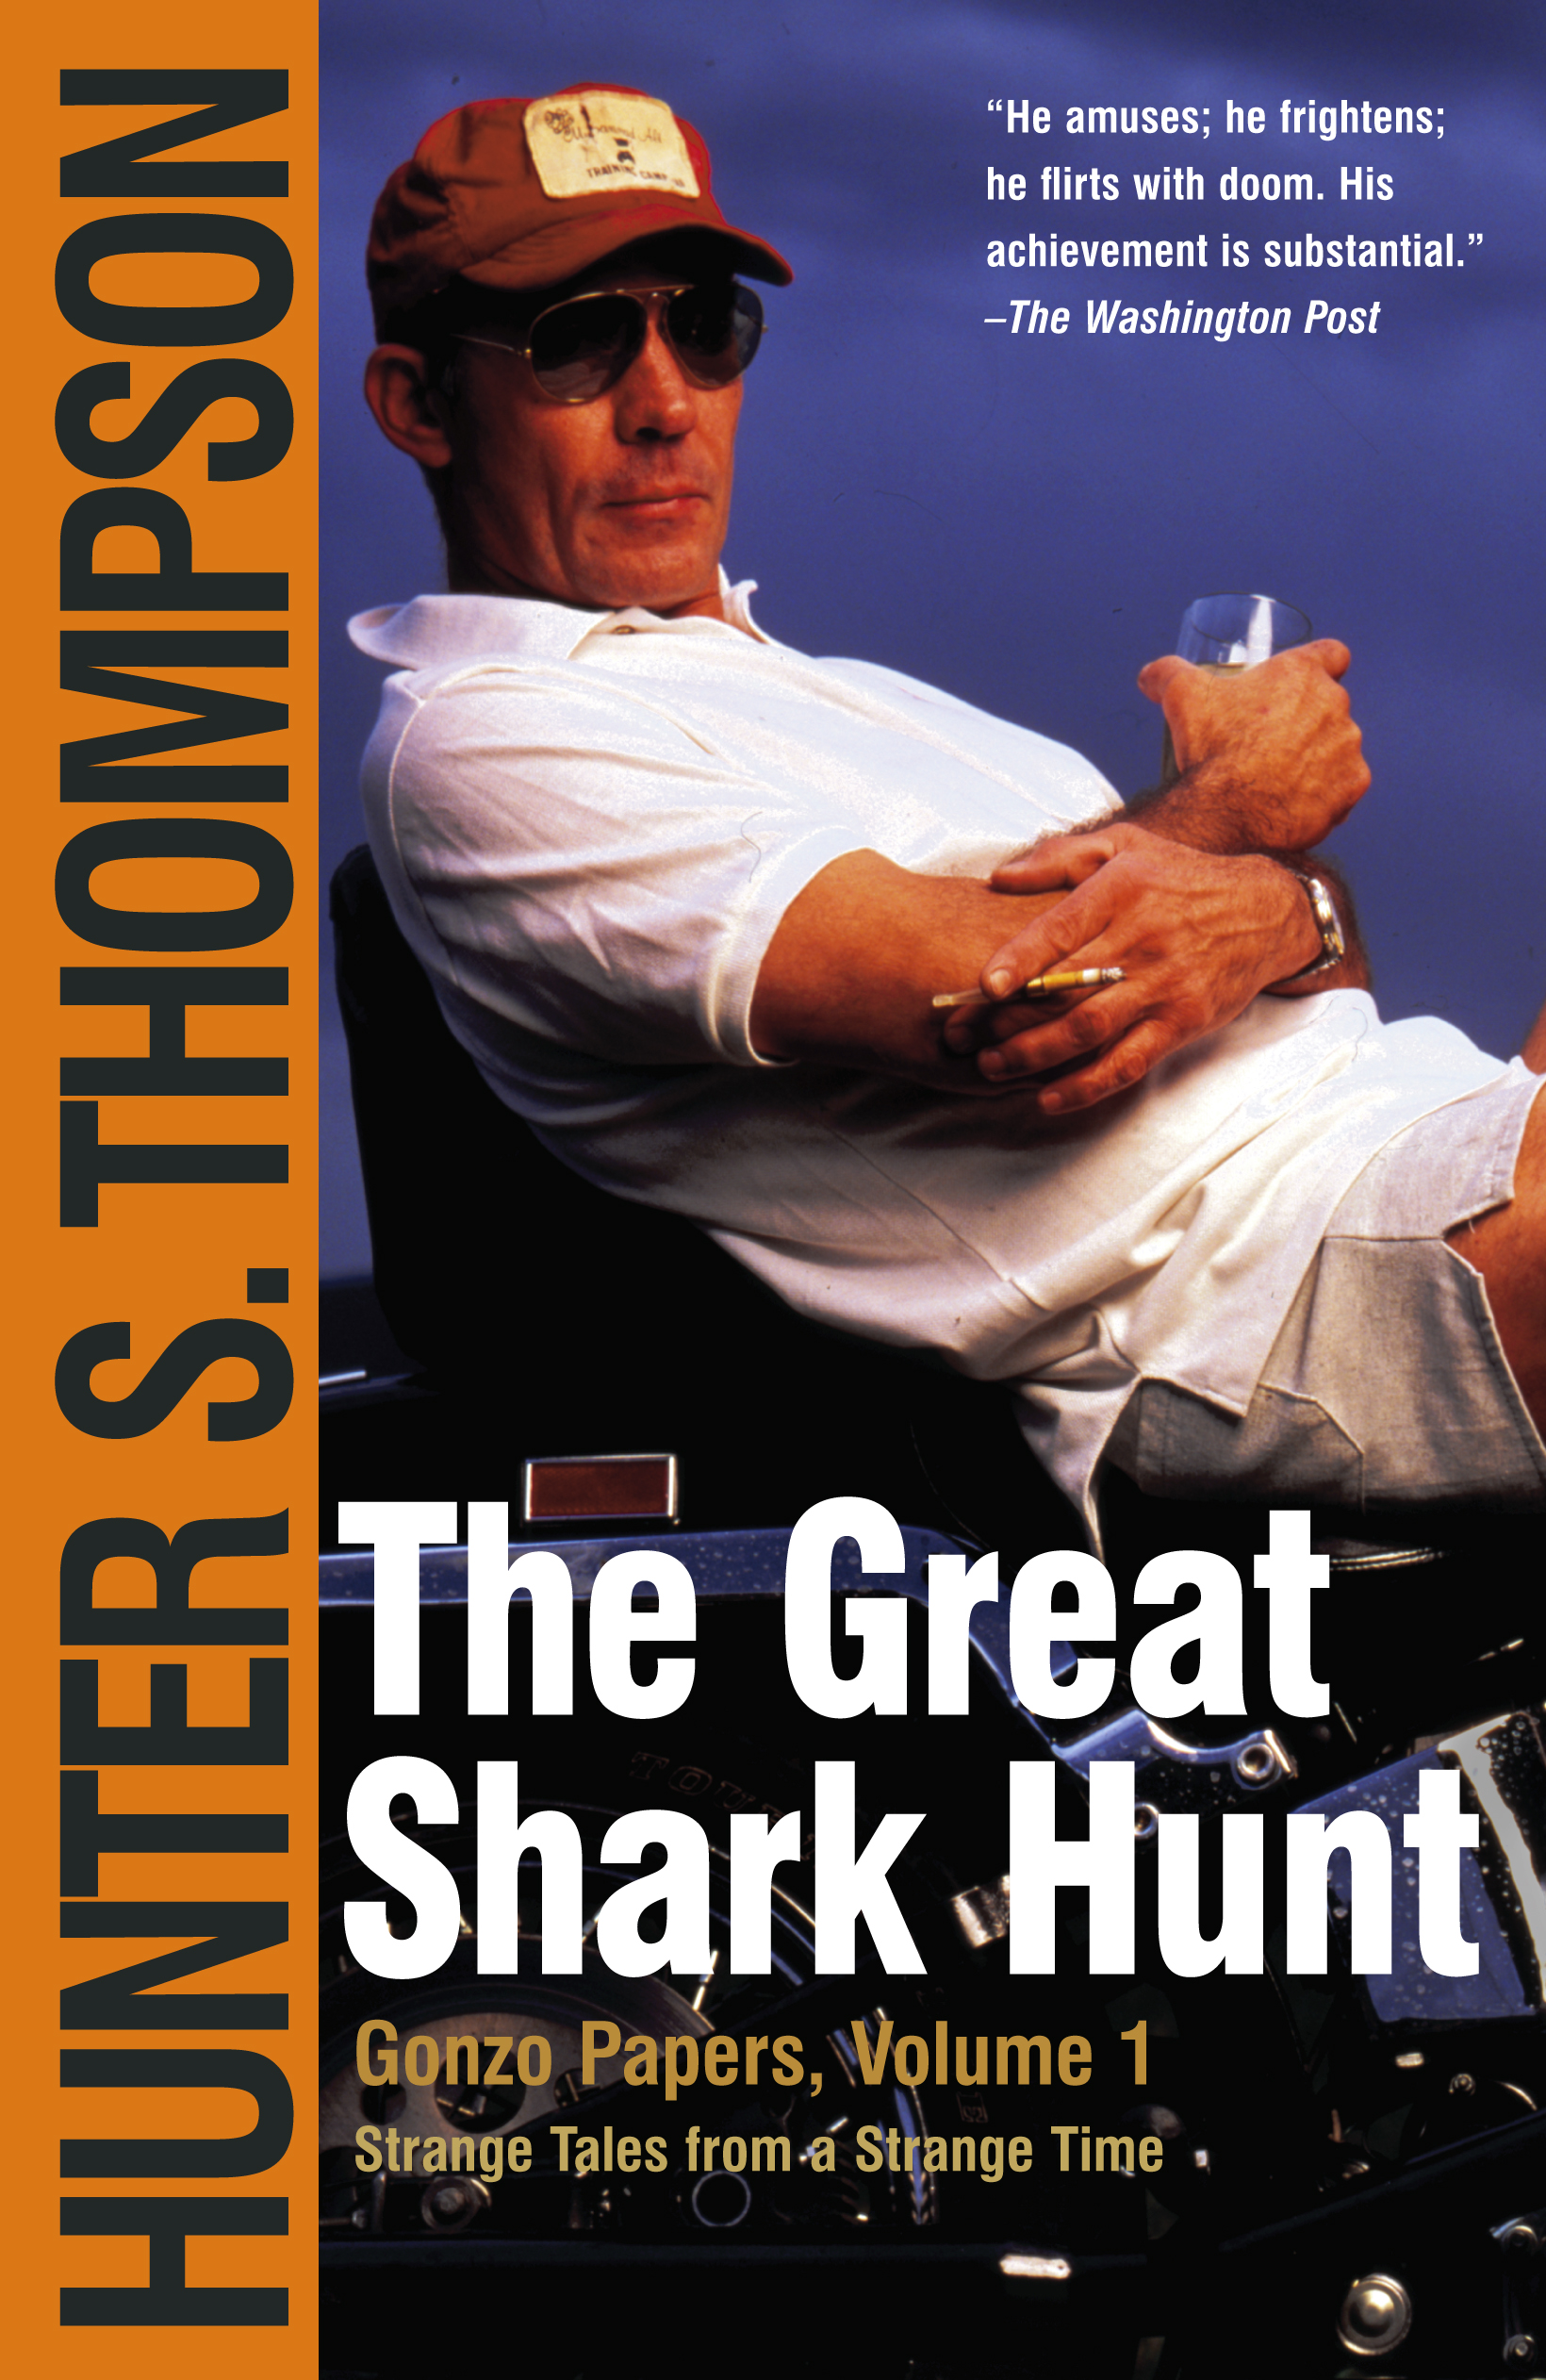 the great shark hunt book by hunter s thompson official cvr9780743250450 9780743250450 hr